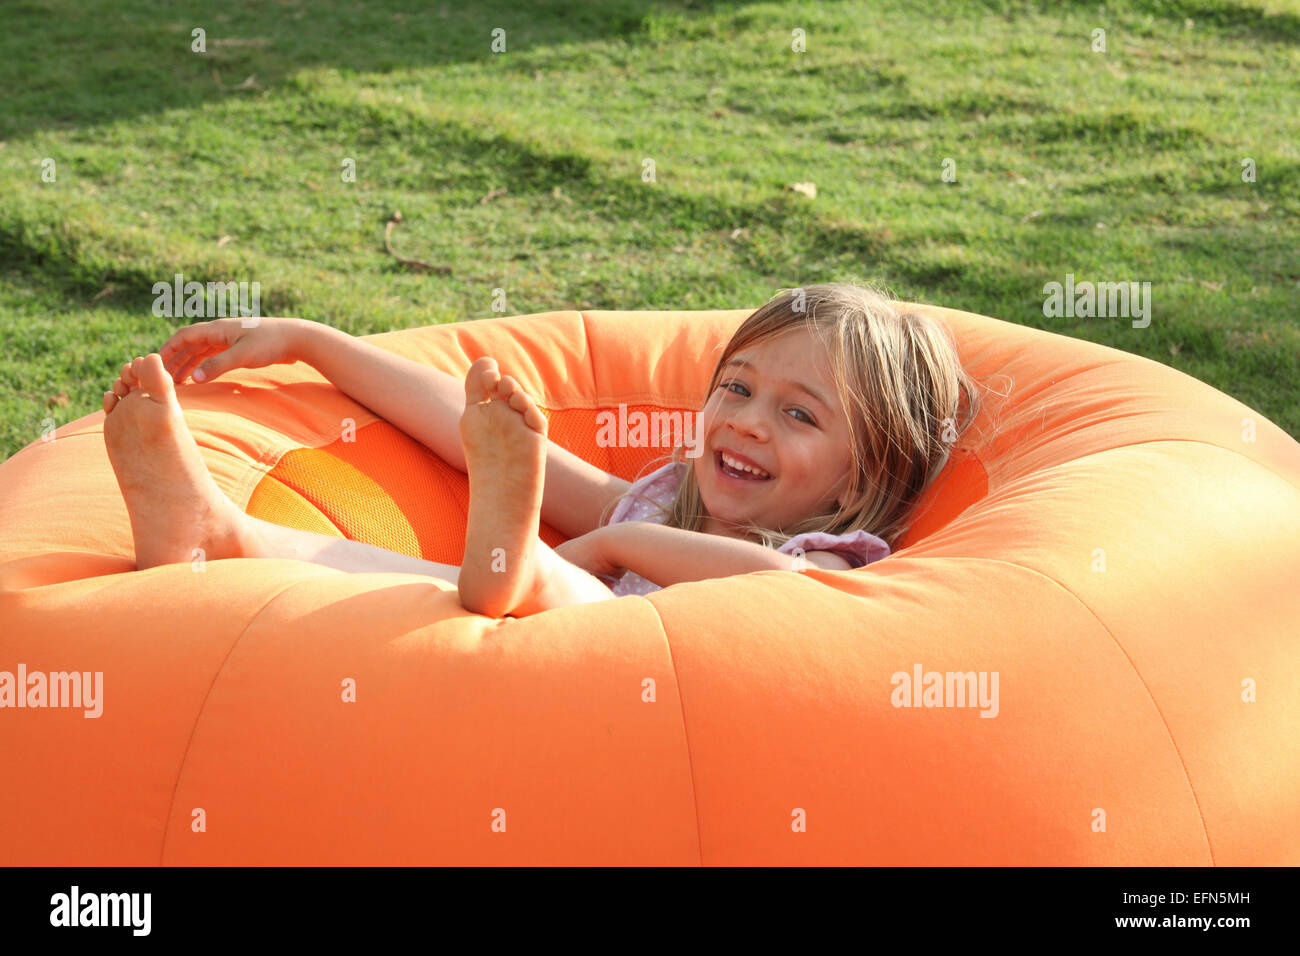 Happy Smiling Young girl on a Bean Bag - Stock Image